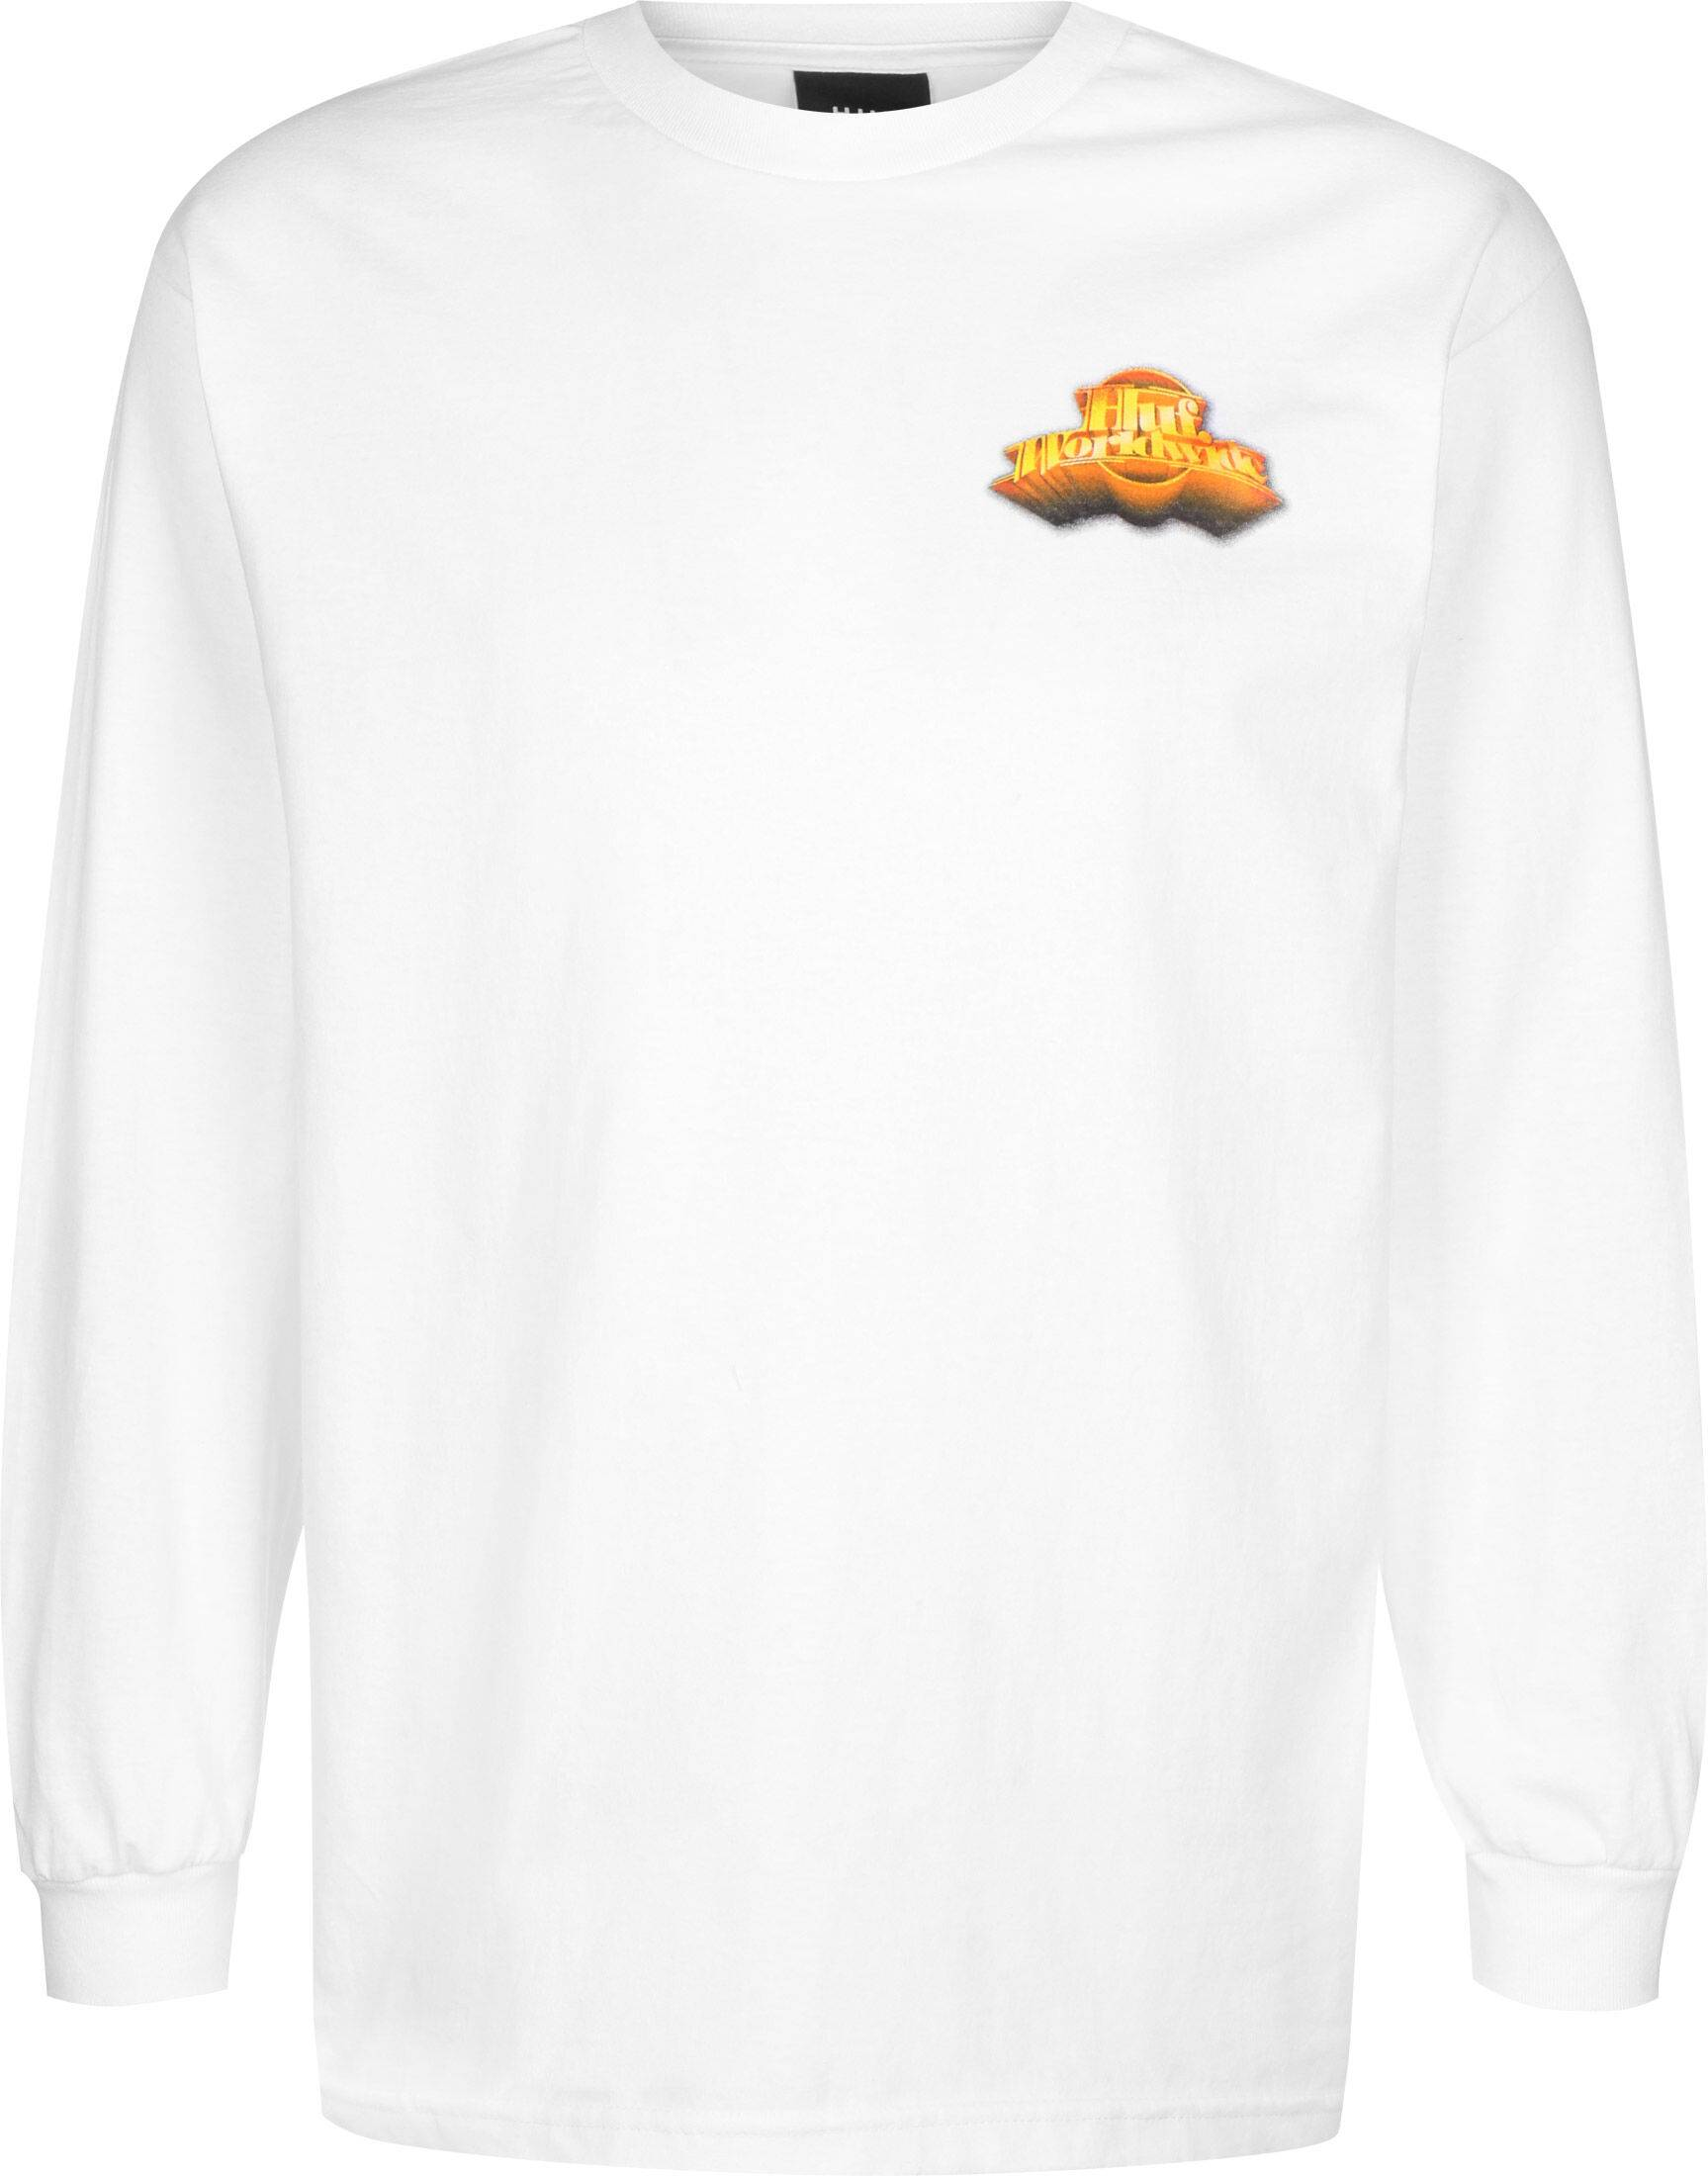 HUF Greatest Hits, taille XL, homme, blanc